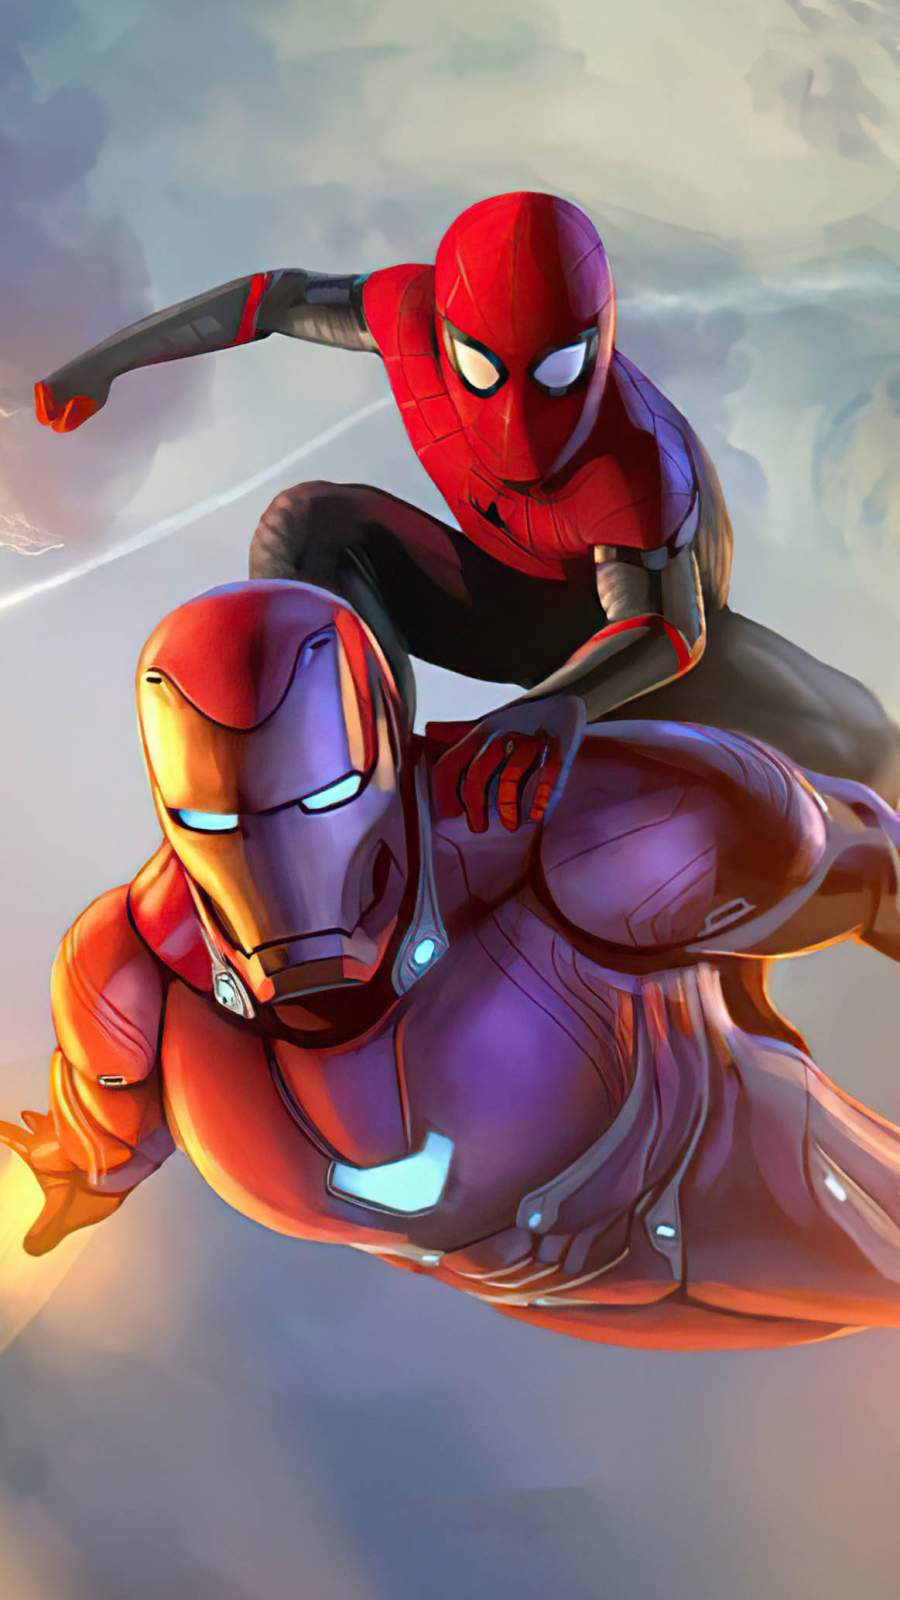 Spider man and iron man